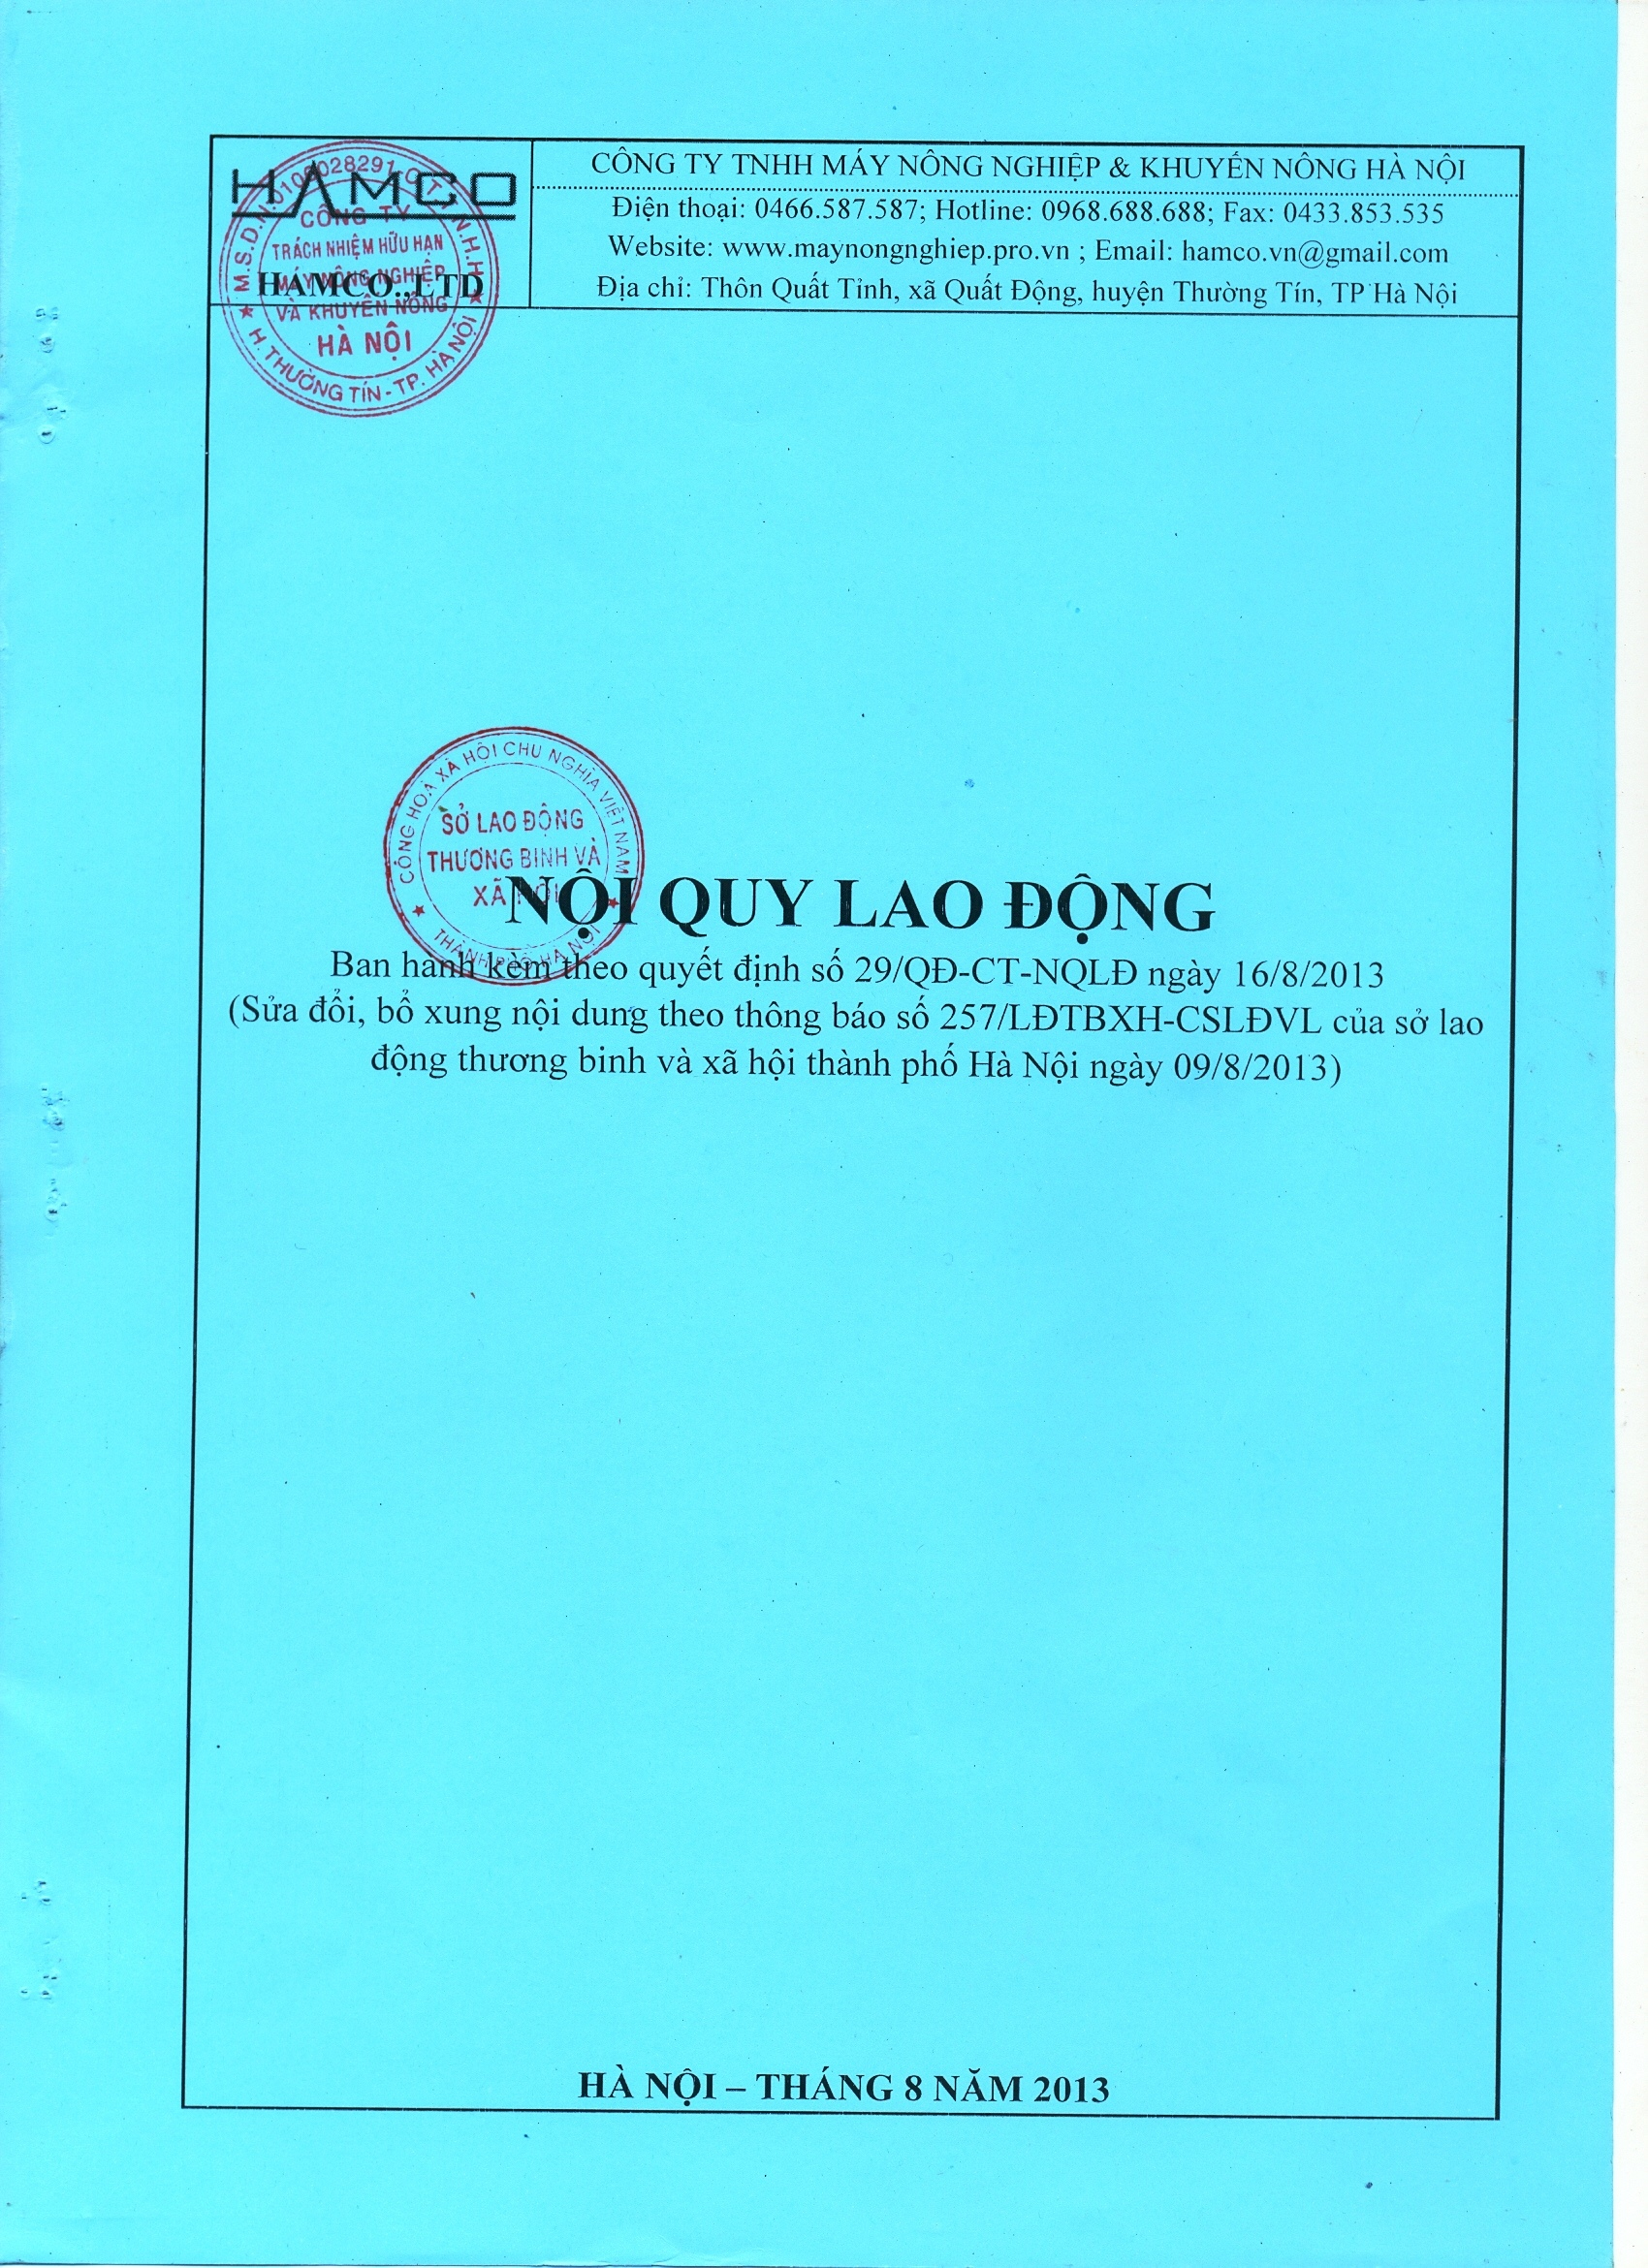 noi-quy-lao-dong-hamco-1